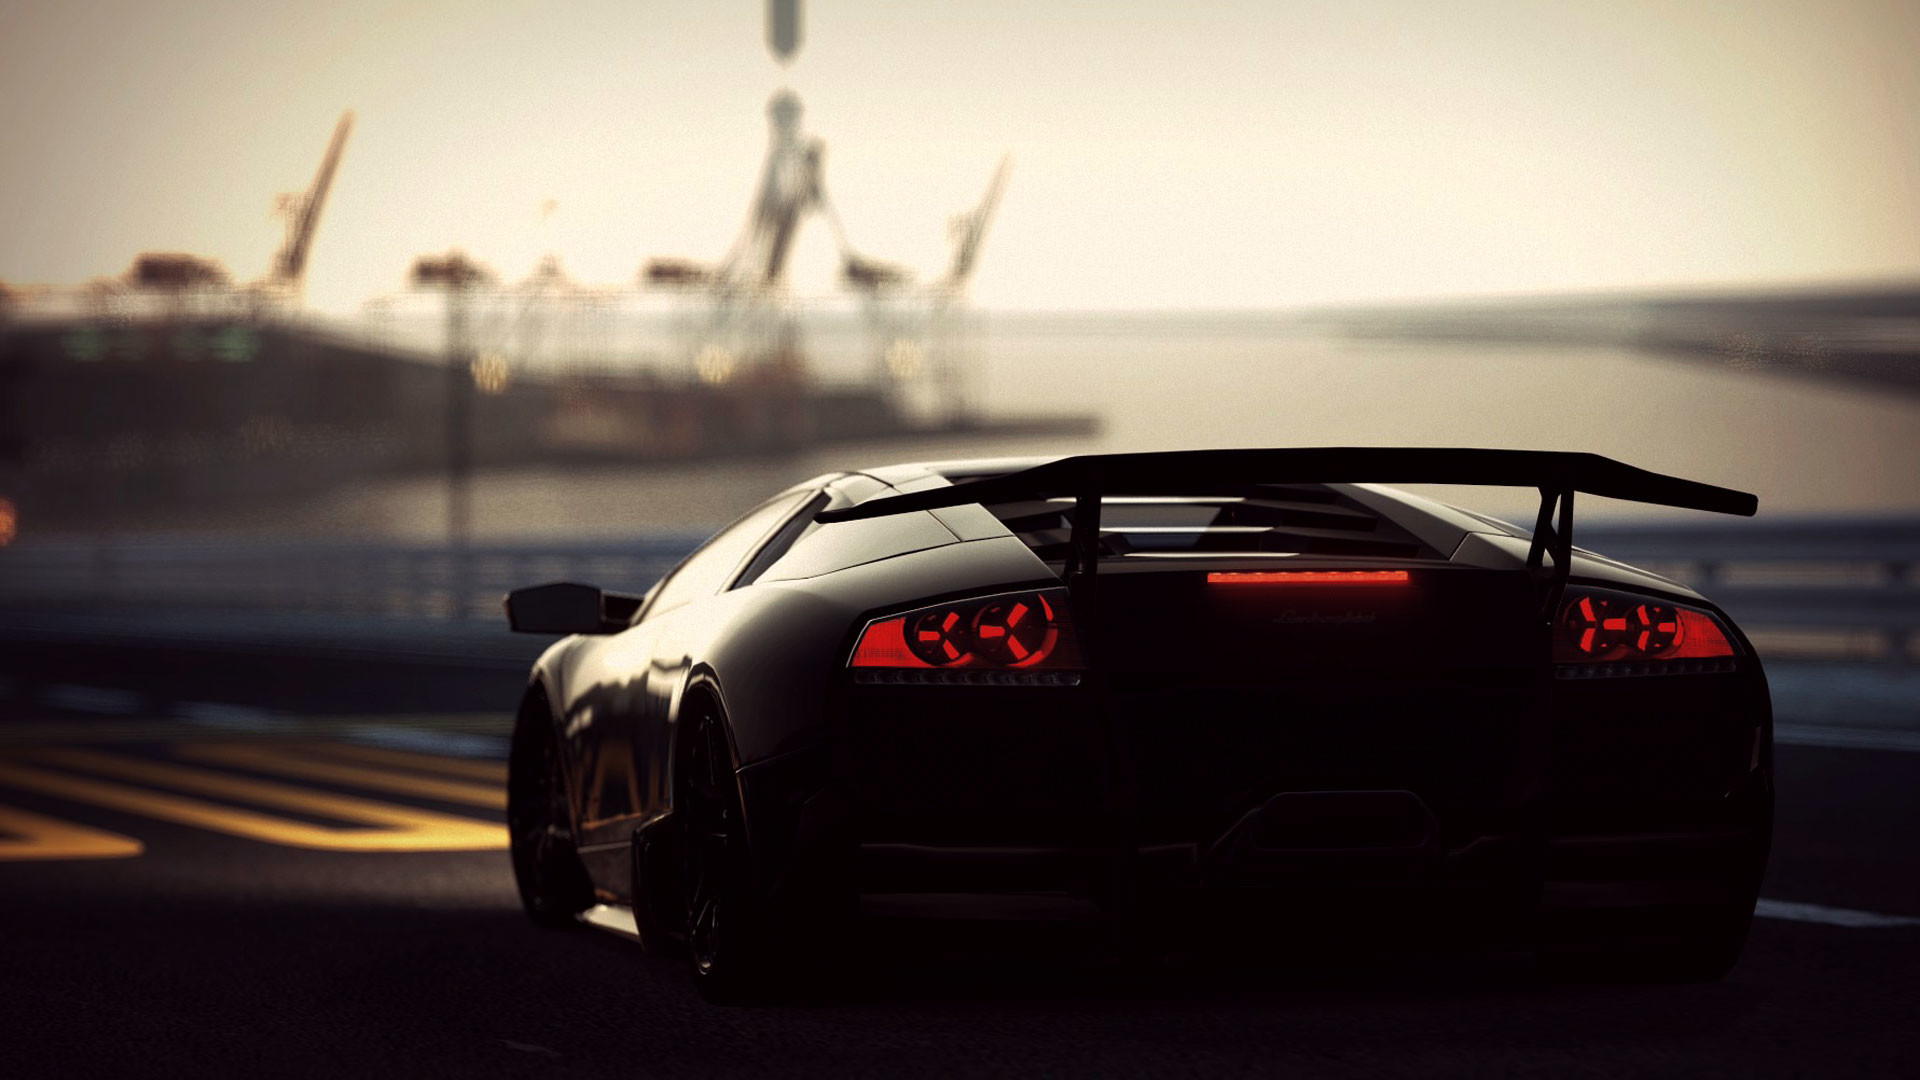 1920x1080 Wallpaper: Lamborghini Wallpaper 1920x1080 (72+ Images